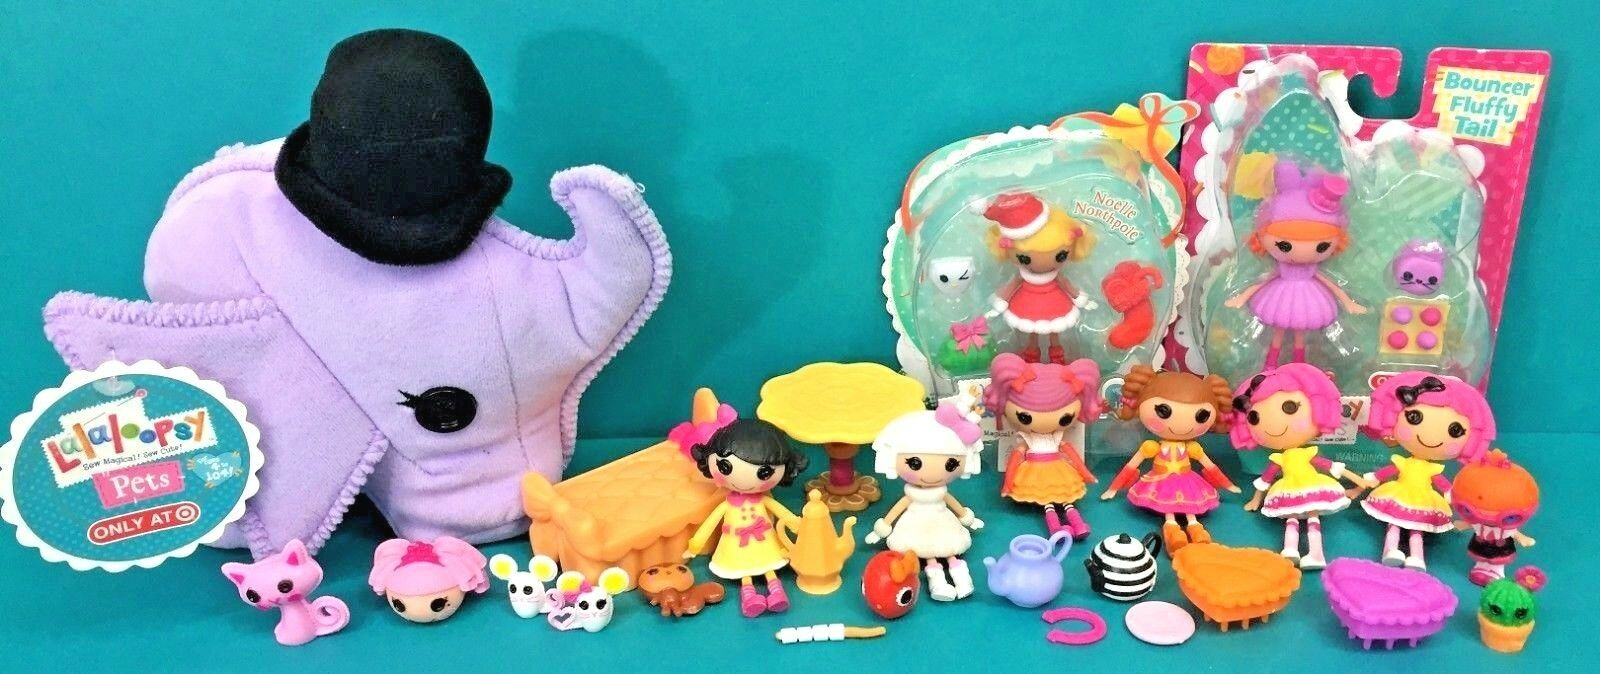 Lalaloopsy Mini 3  Doll Figures Furniture Accessories Plush Elephant Pet NIP Lot